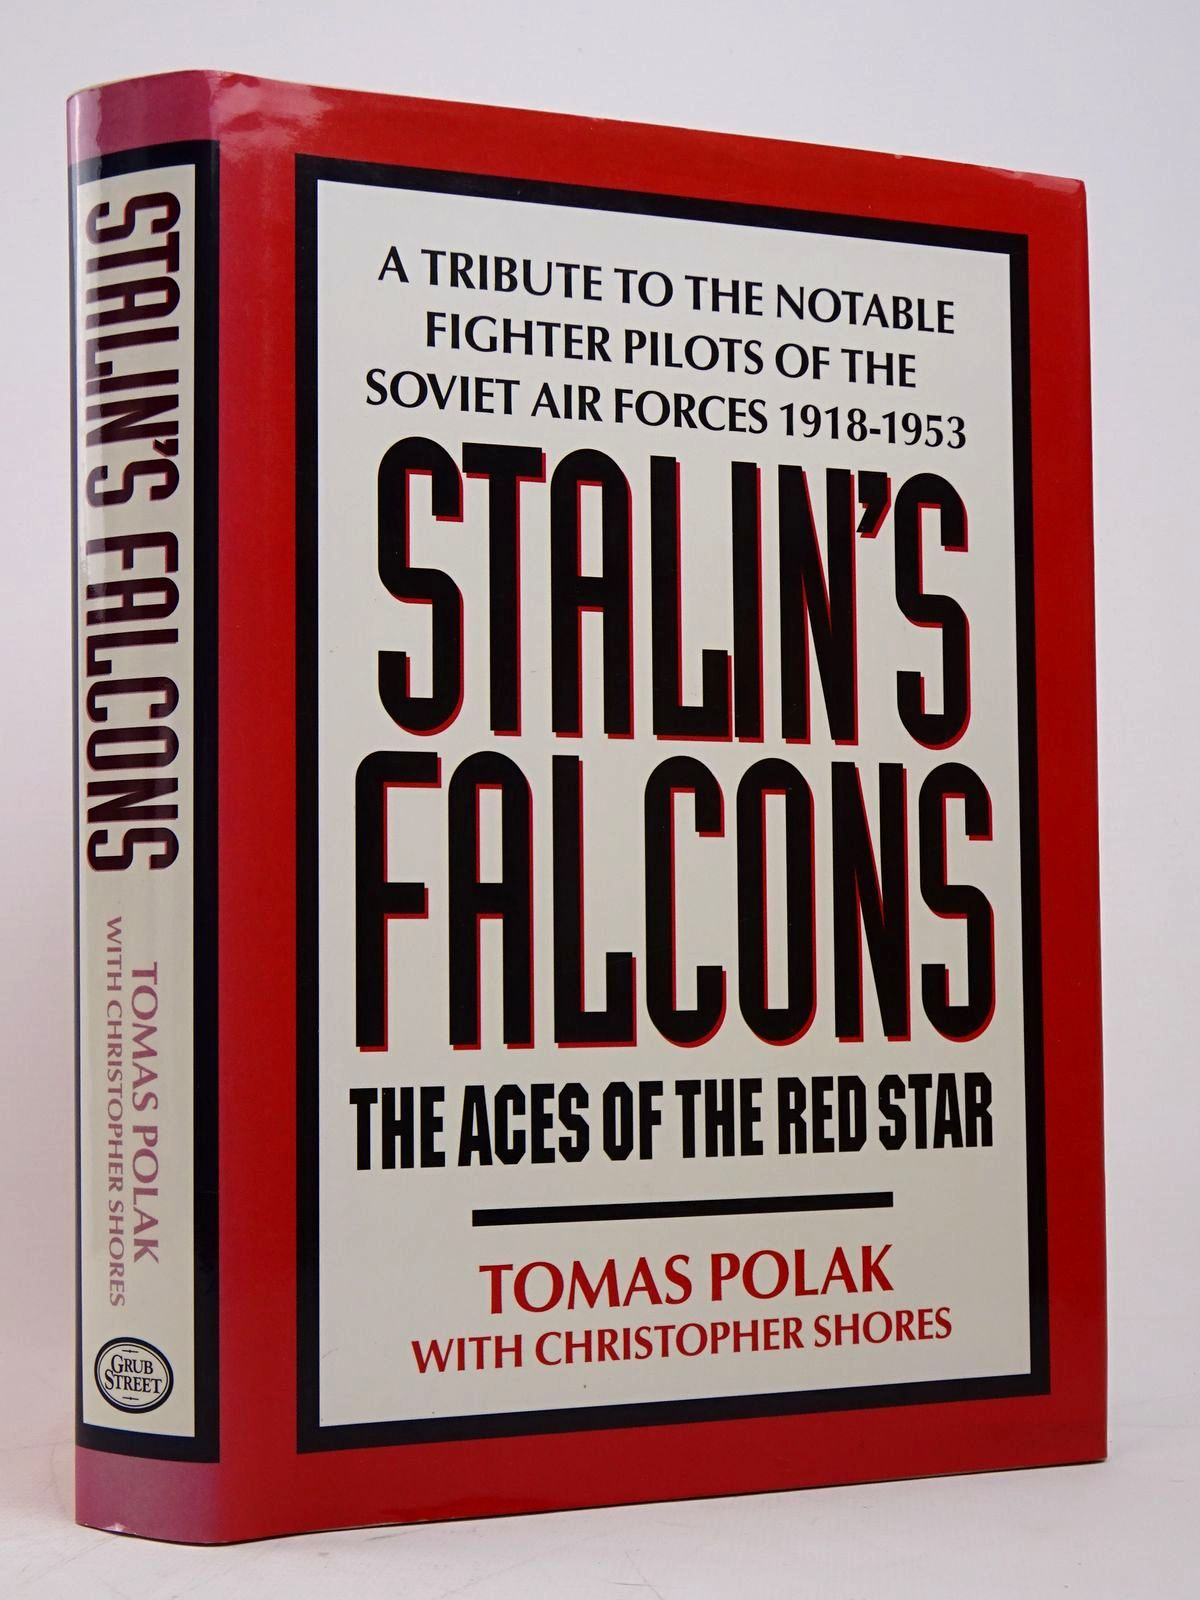 Photo of STALIN'S FALCONS THE ACES OF THE RED STAR written by Polak, Tomas Shores, Christopher published by Grub Street (STOCK CODE: 1817820)  for sale by Stella & Rose's Books